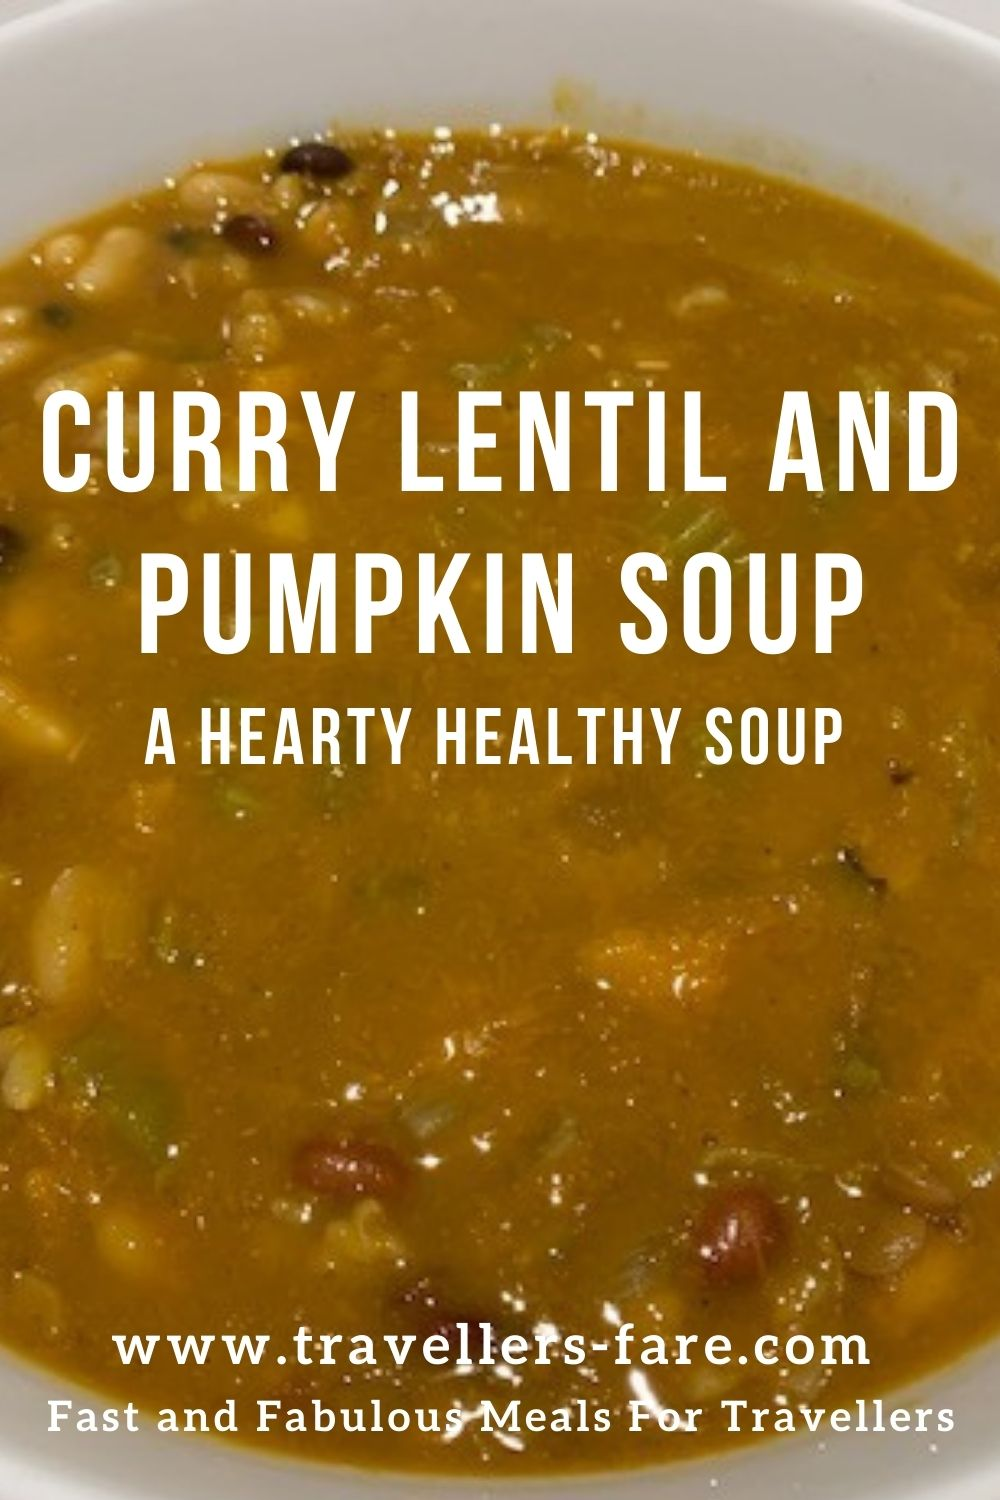 Curry Lentil and Pumpkin Soup PIN. A Hearty And Healthy Soup Made From Curry Powder, Lentils, Pumpkin, Onion And Vegetable Stock.